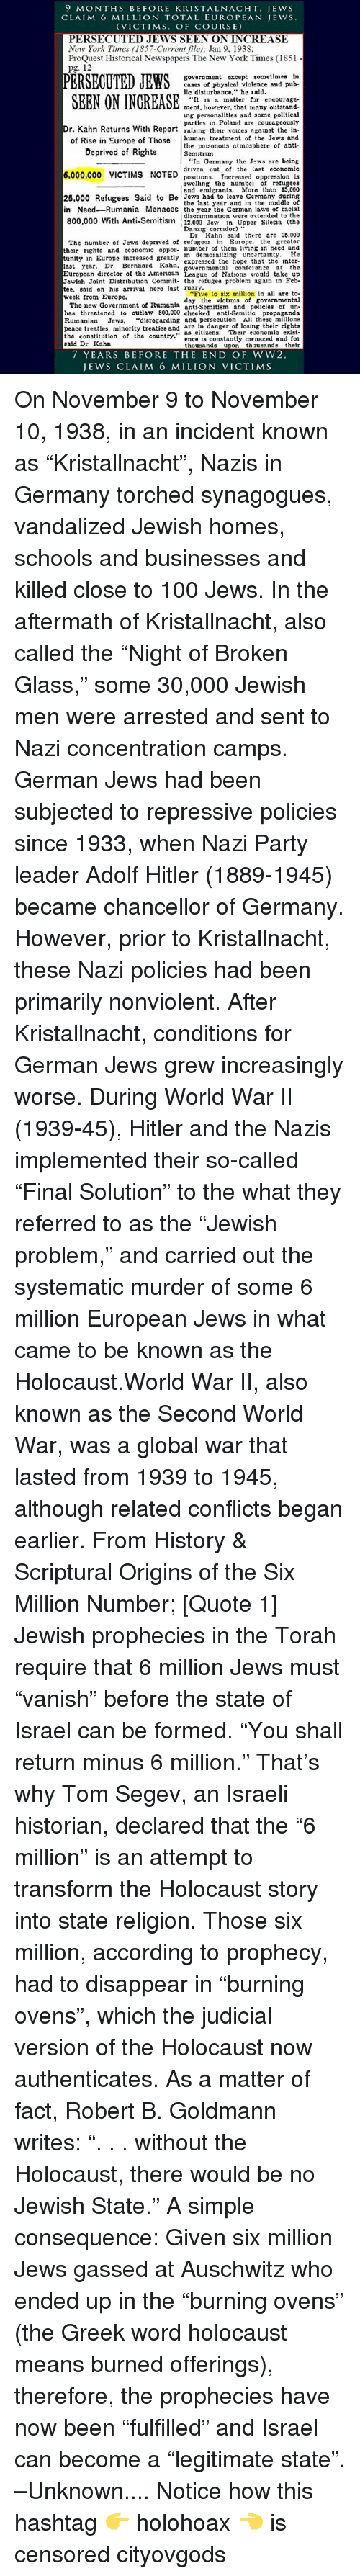 adolf hitlers henchmen carried out his final solution in world war ii One of hitler's most sinister henchmen, he was also in charge of the death camps in the east  the holocaust - as a task which he had to carry out on the behalf of the highest authority.